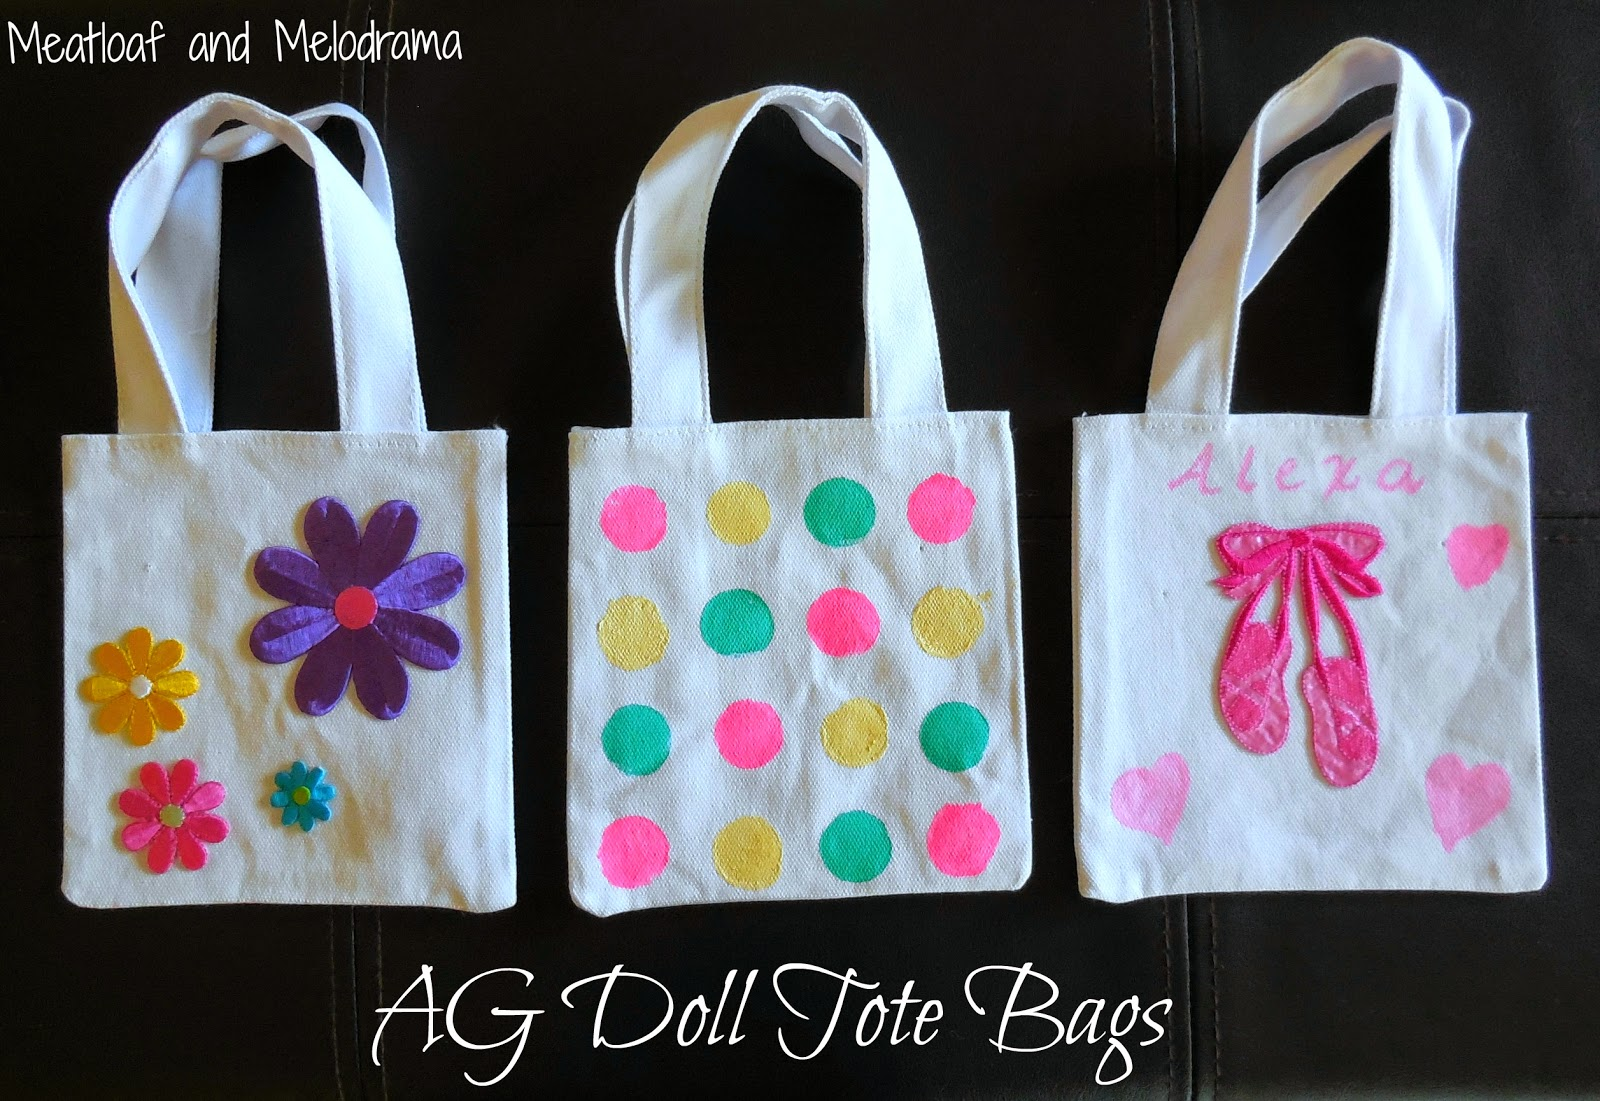 decorated tote bags for american girl dolls